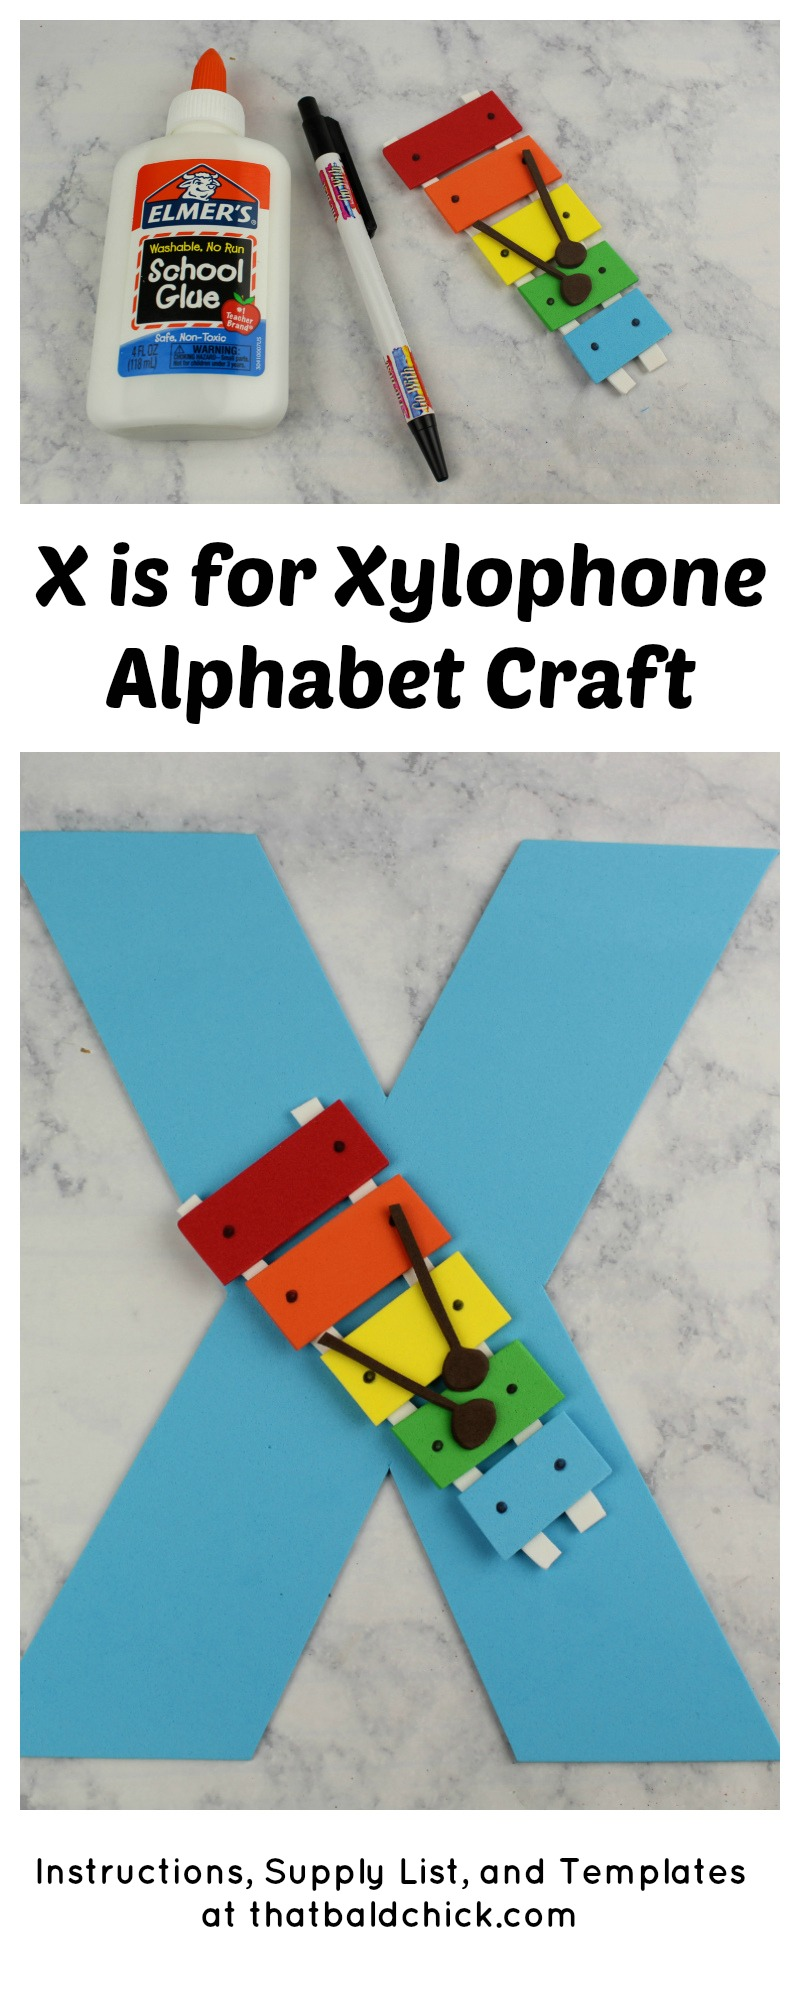 X is for Xylophone Alphabet Craft at thatbaldchick.com